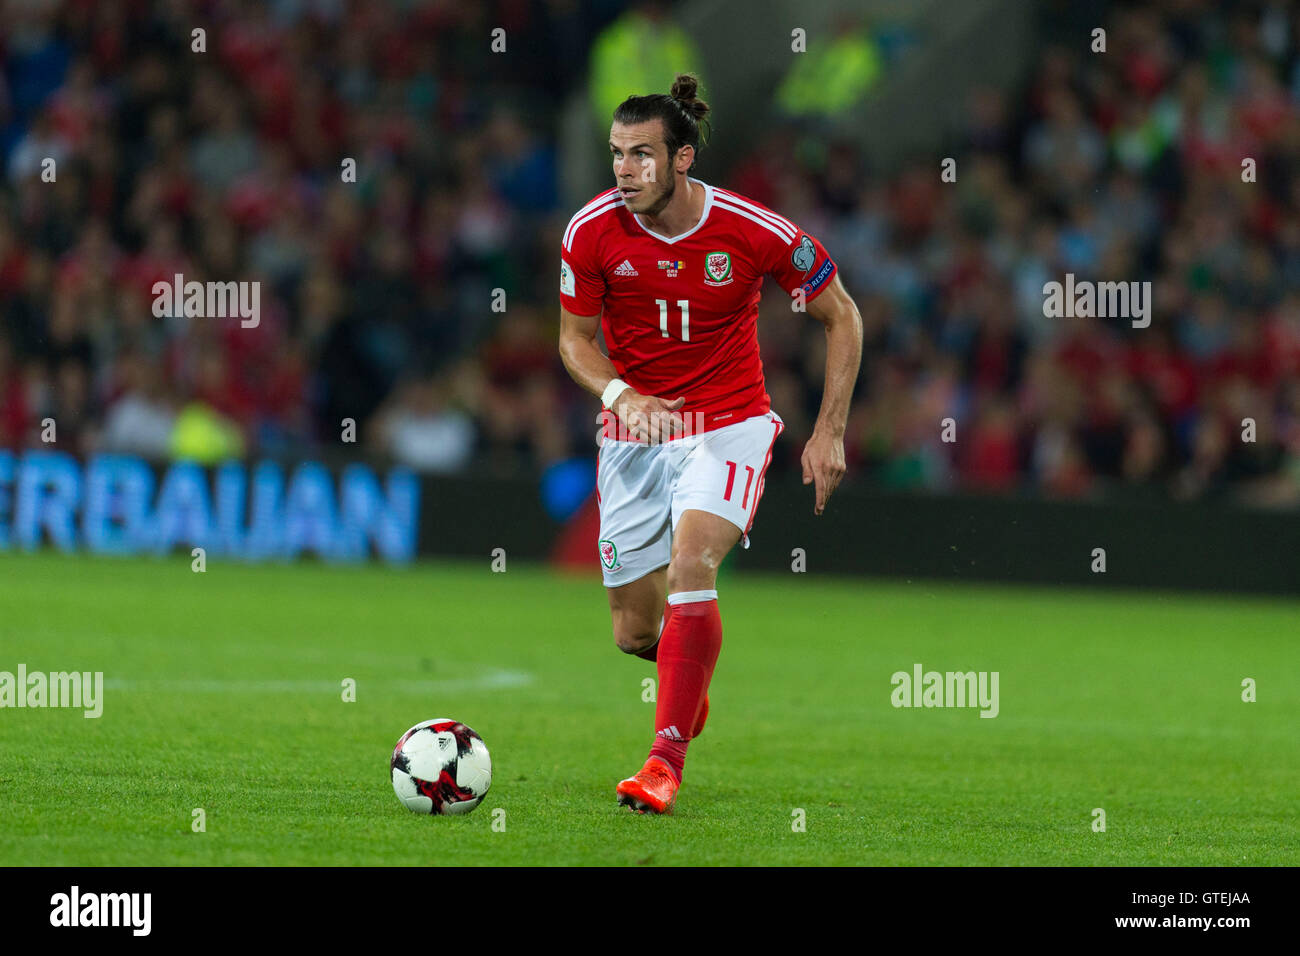 Welsh footballer Gareth Bale in action for Wales football team. - Stock Image